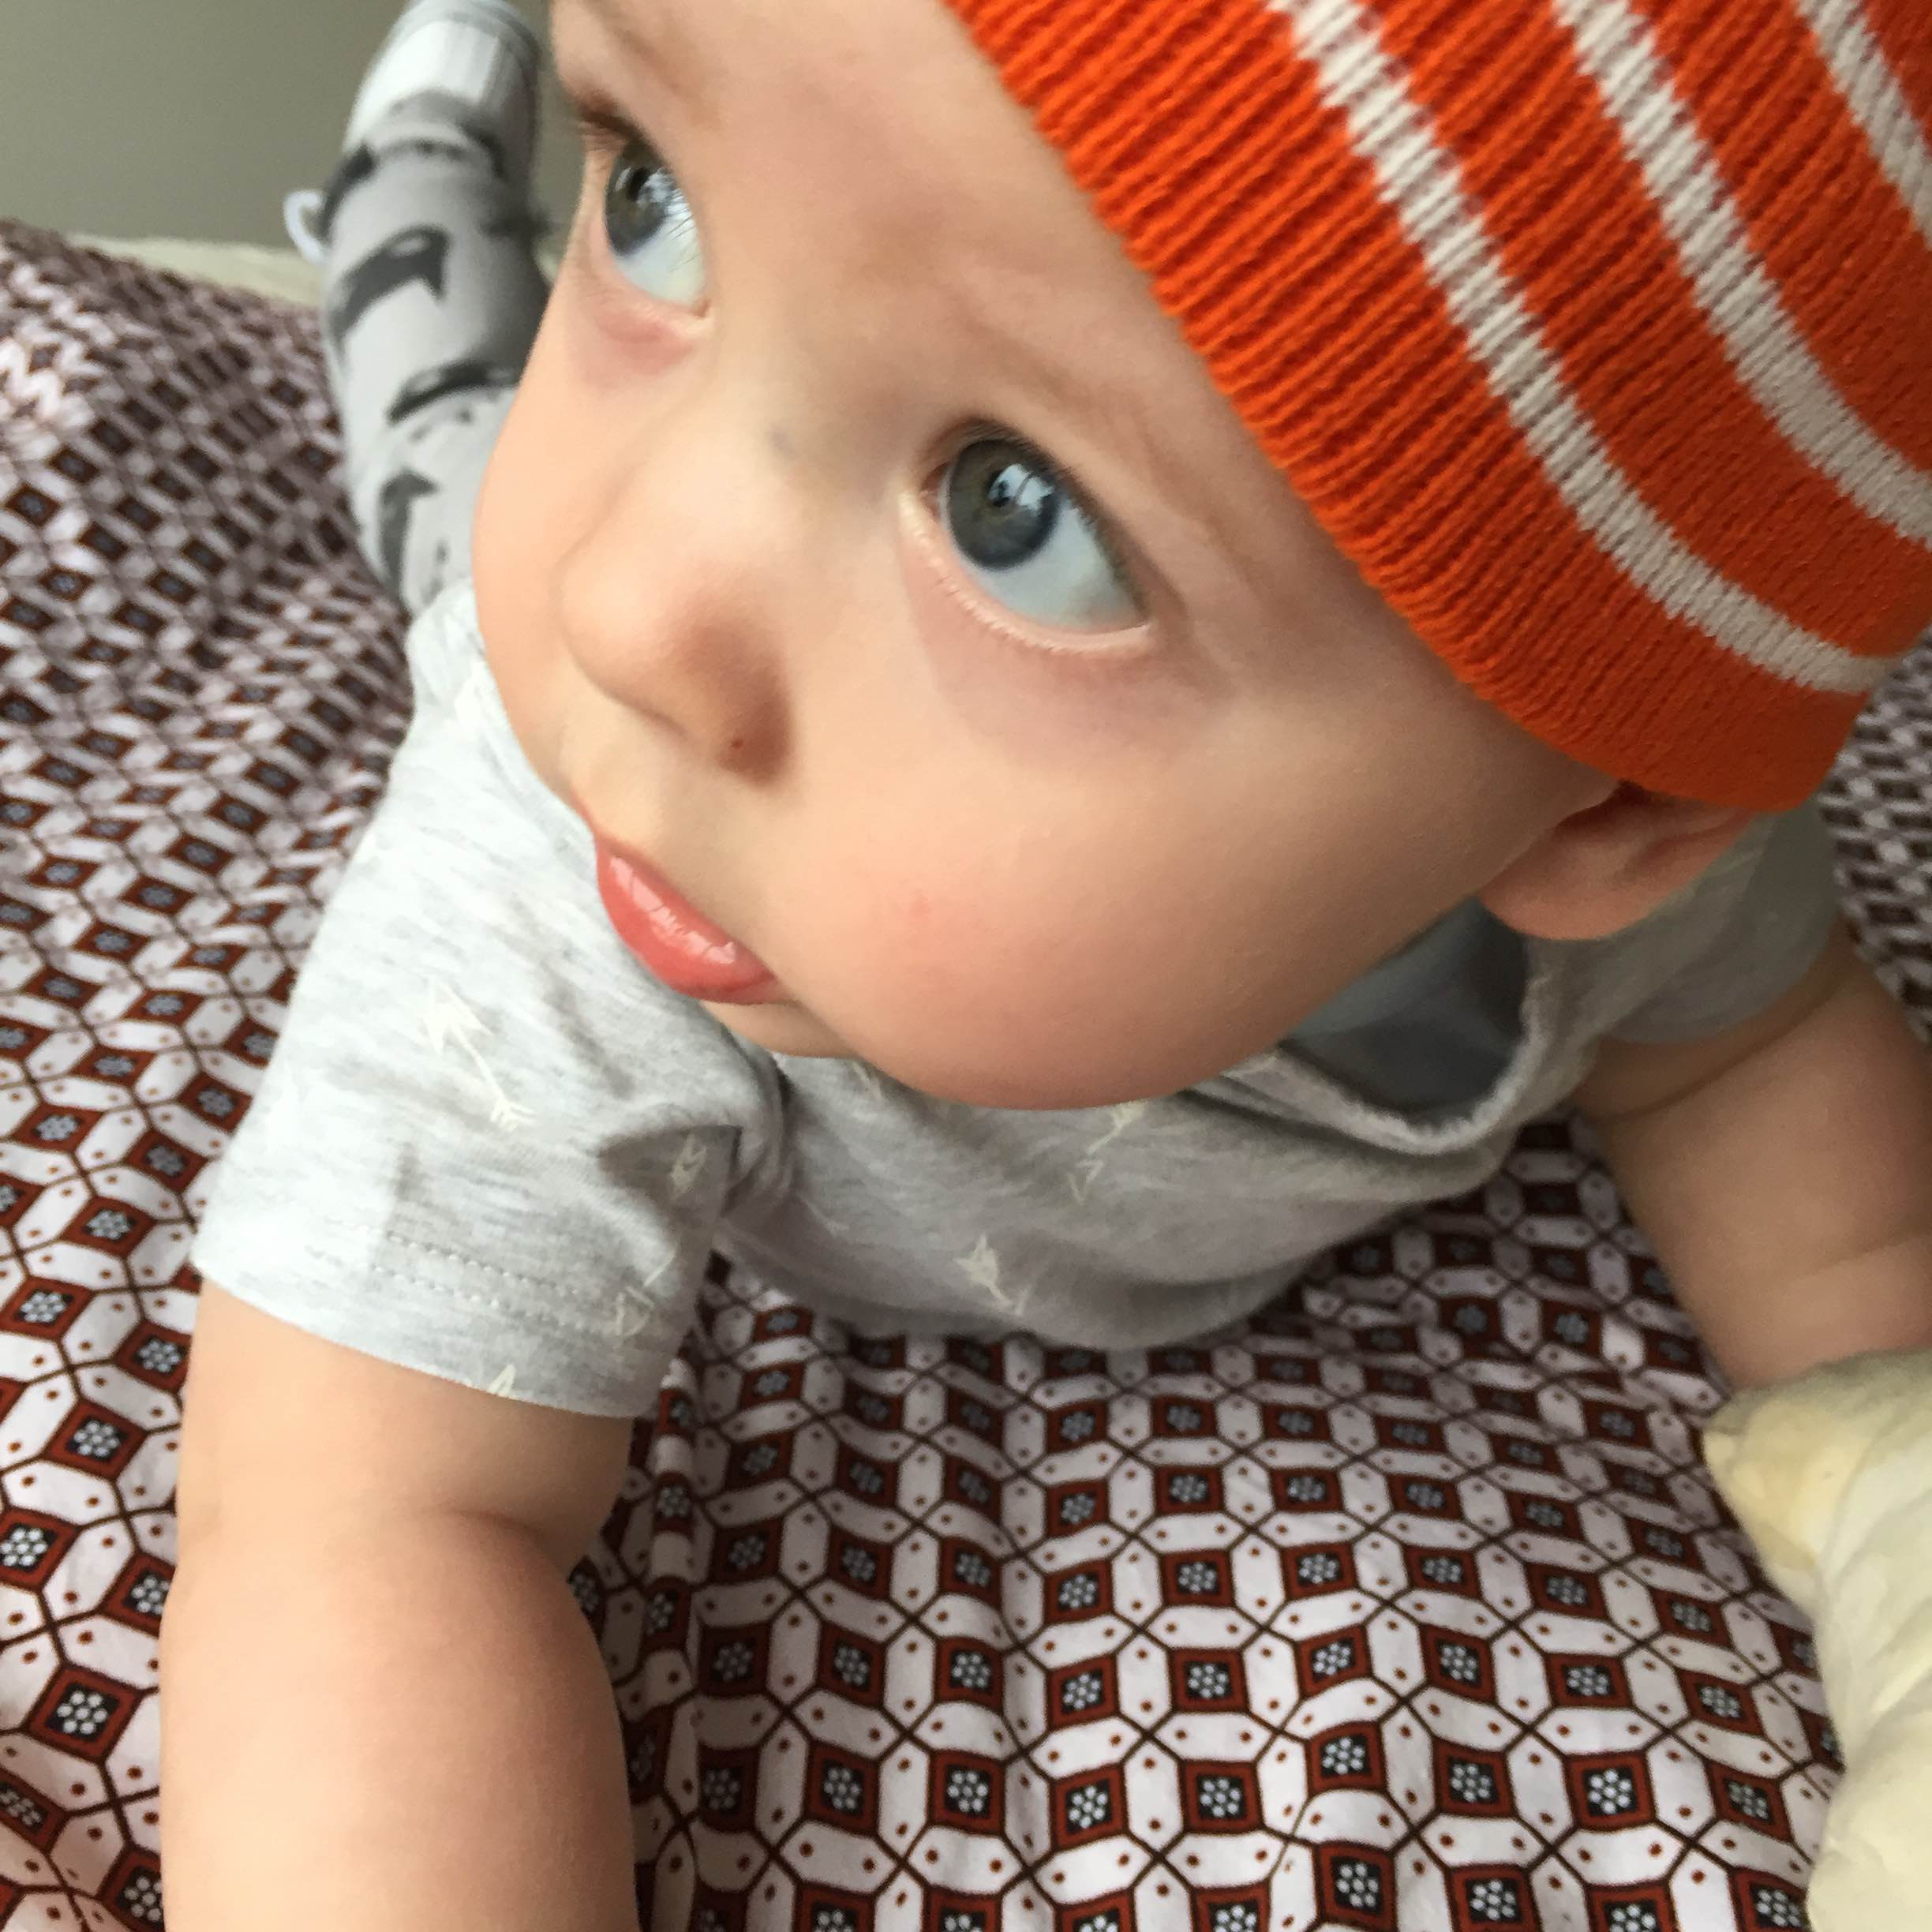 SJ 8 months old orange beanie kid